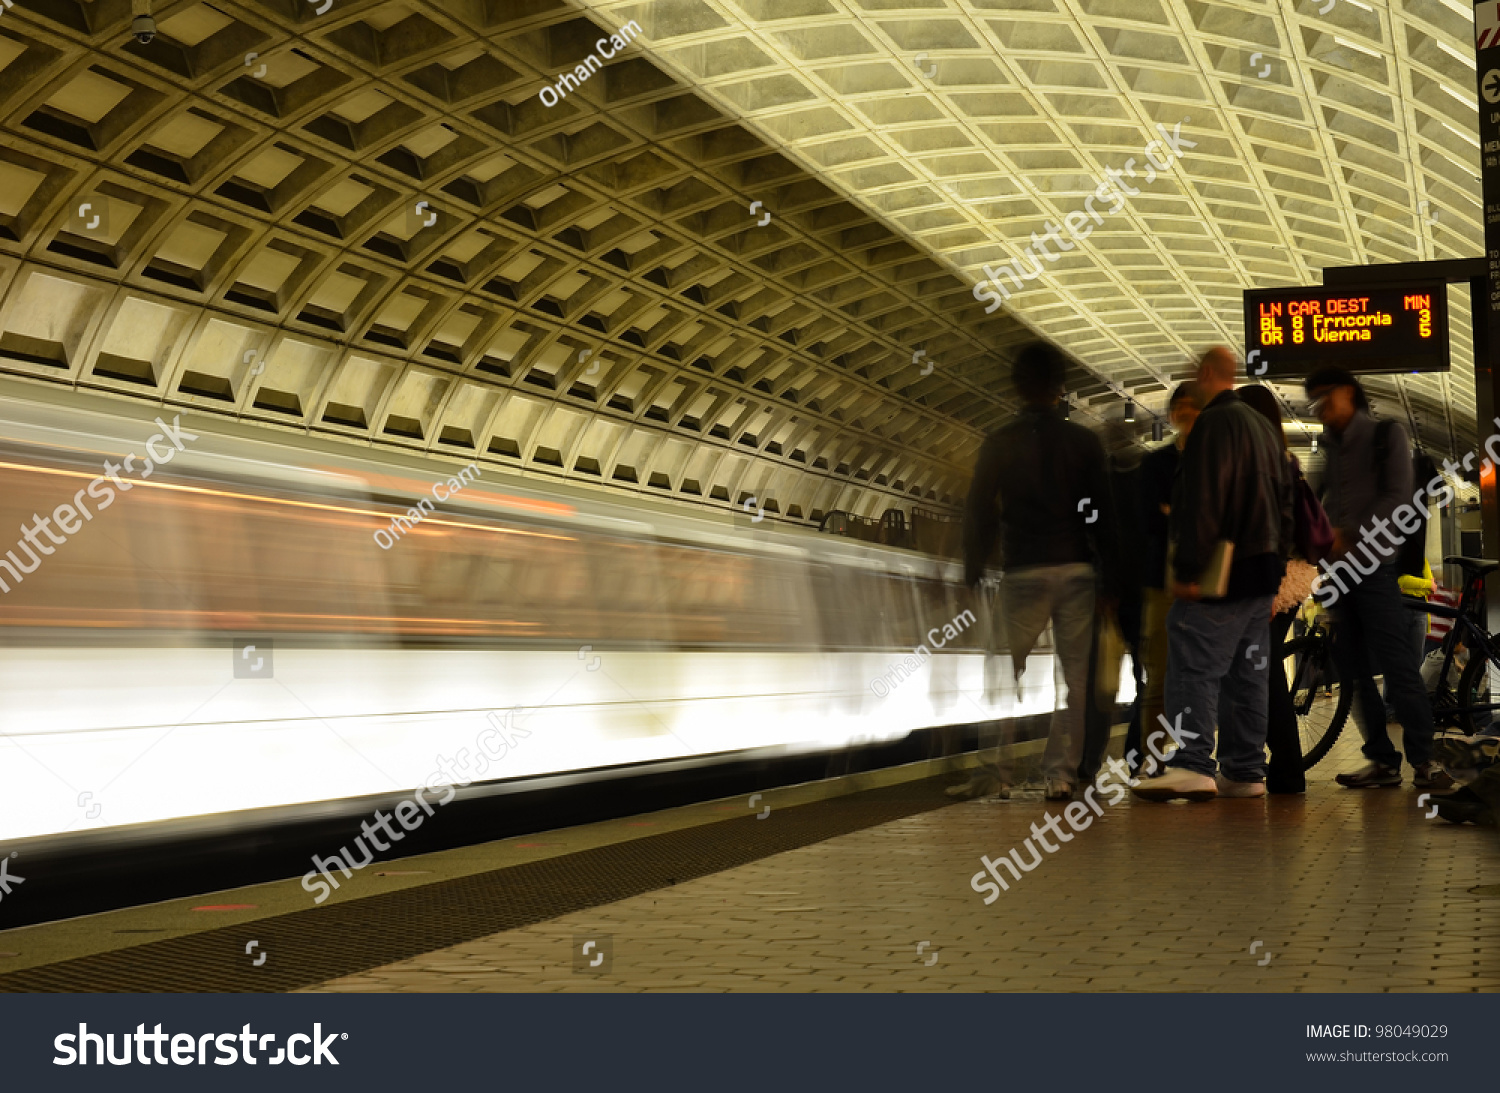 metro station interior in washington dc united states stock photo 98049029 shutterstock. Black Bedroom Furniture Sets. Home Design Ideas